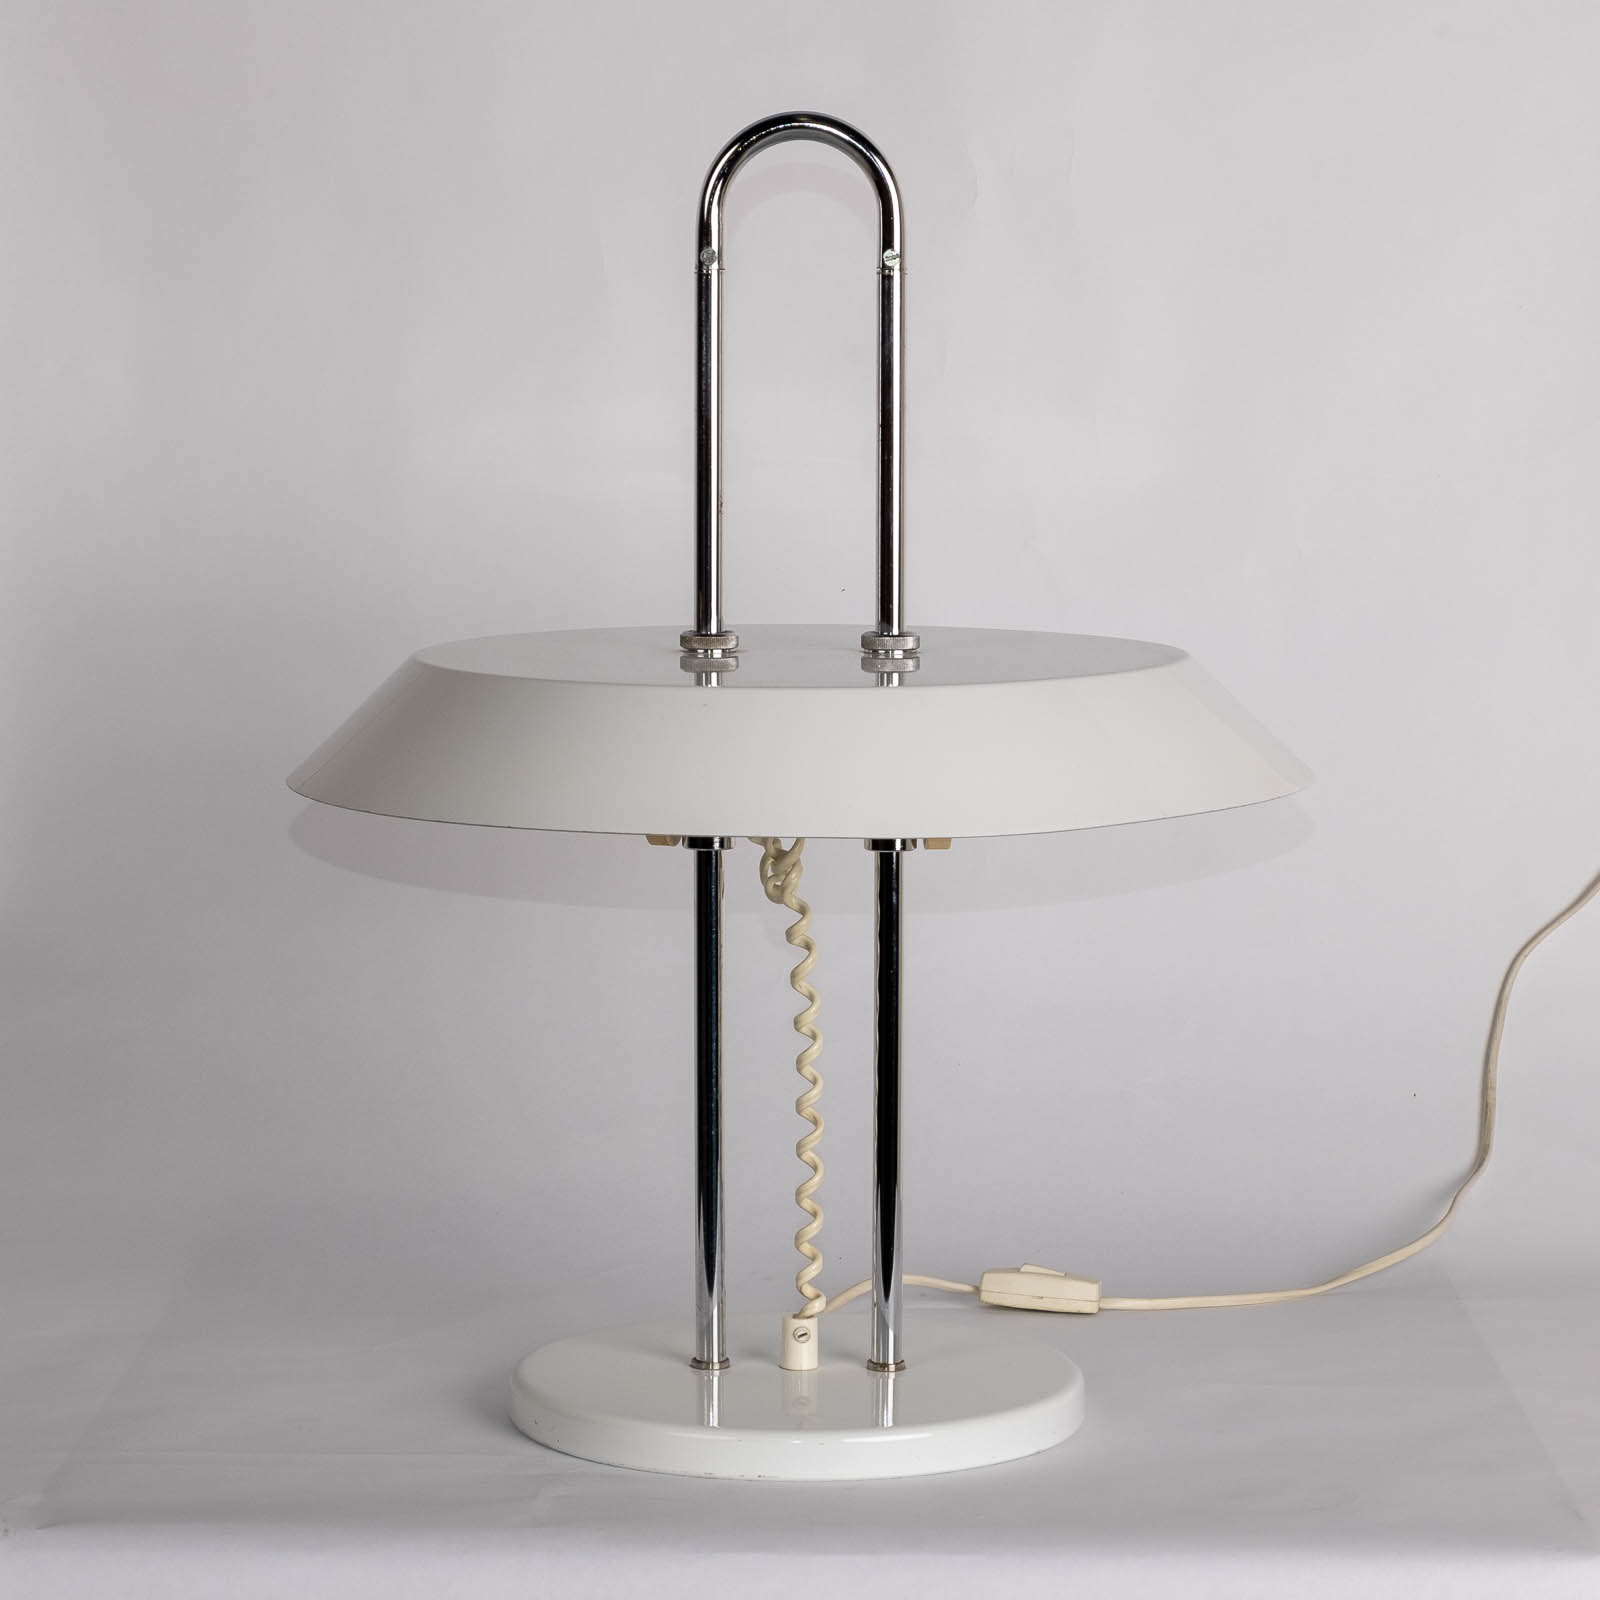 Desk Lamp With Chrome Body, The Netherlands1